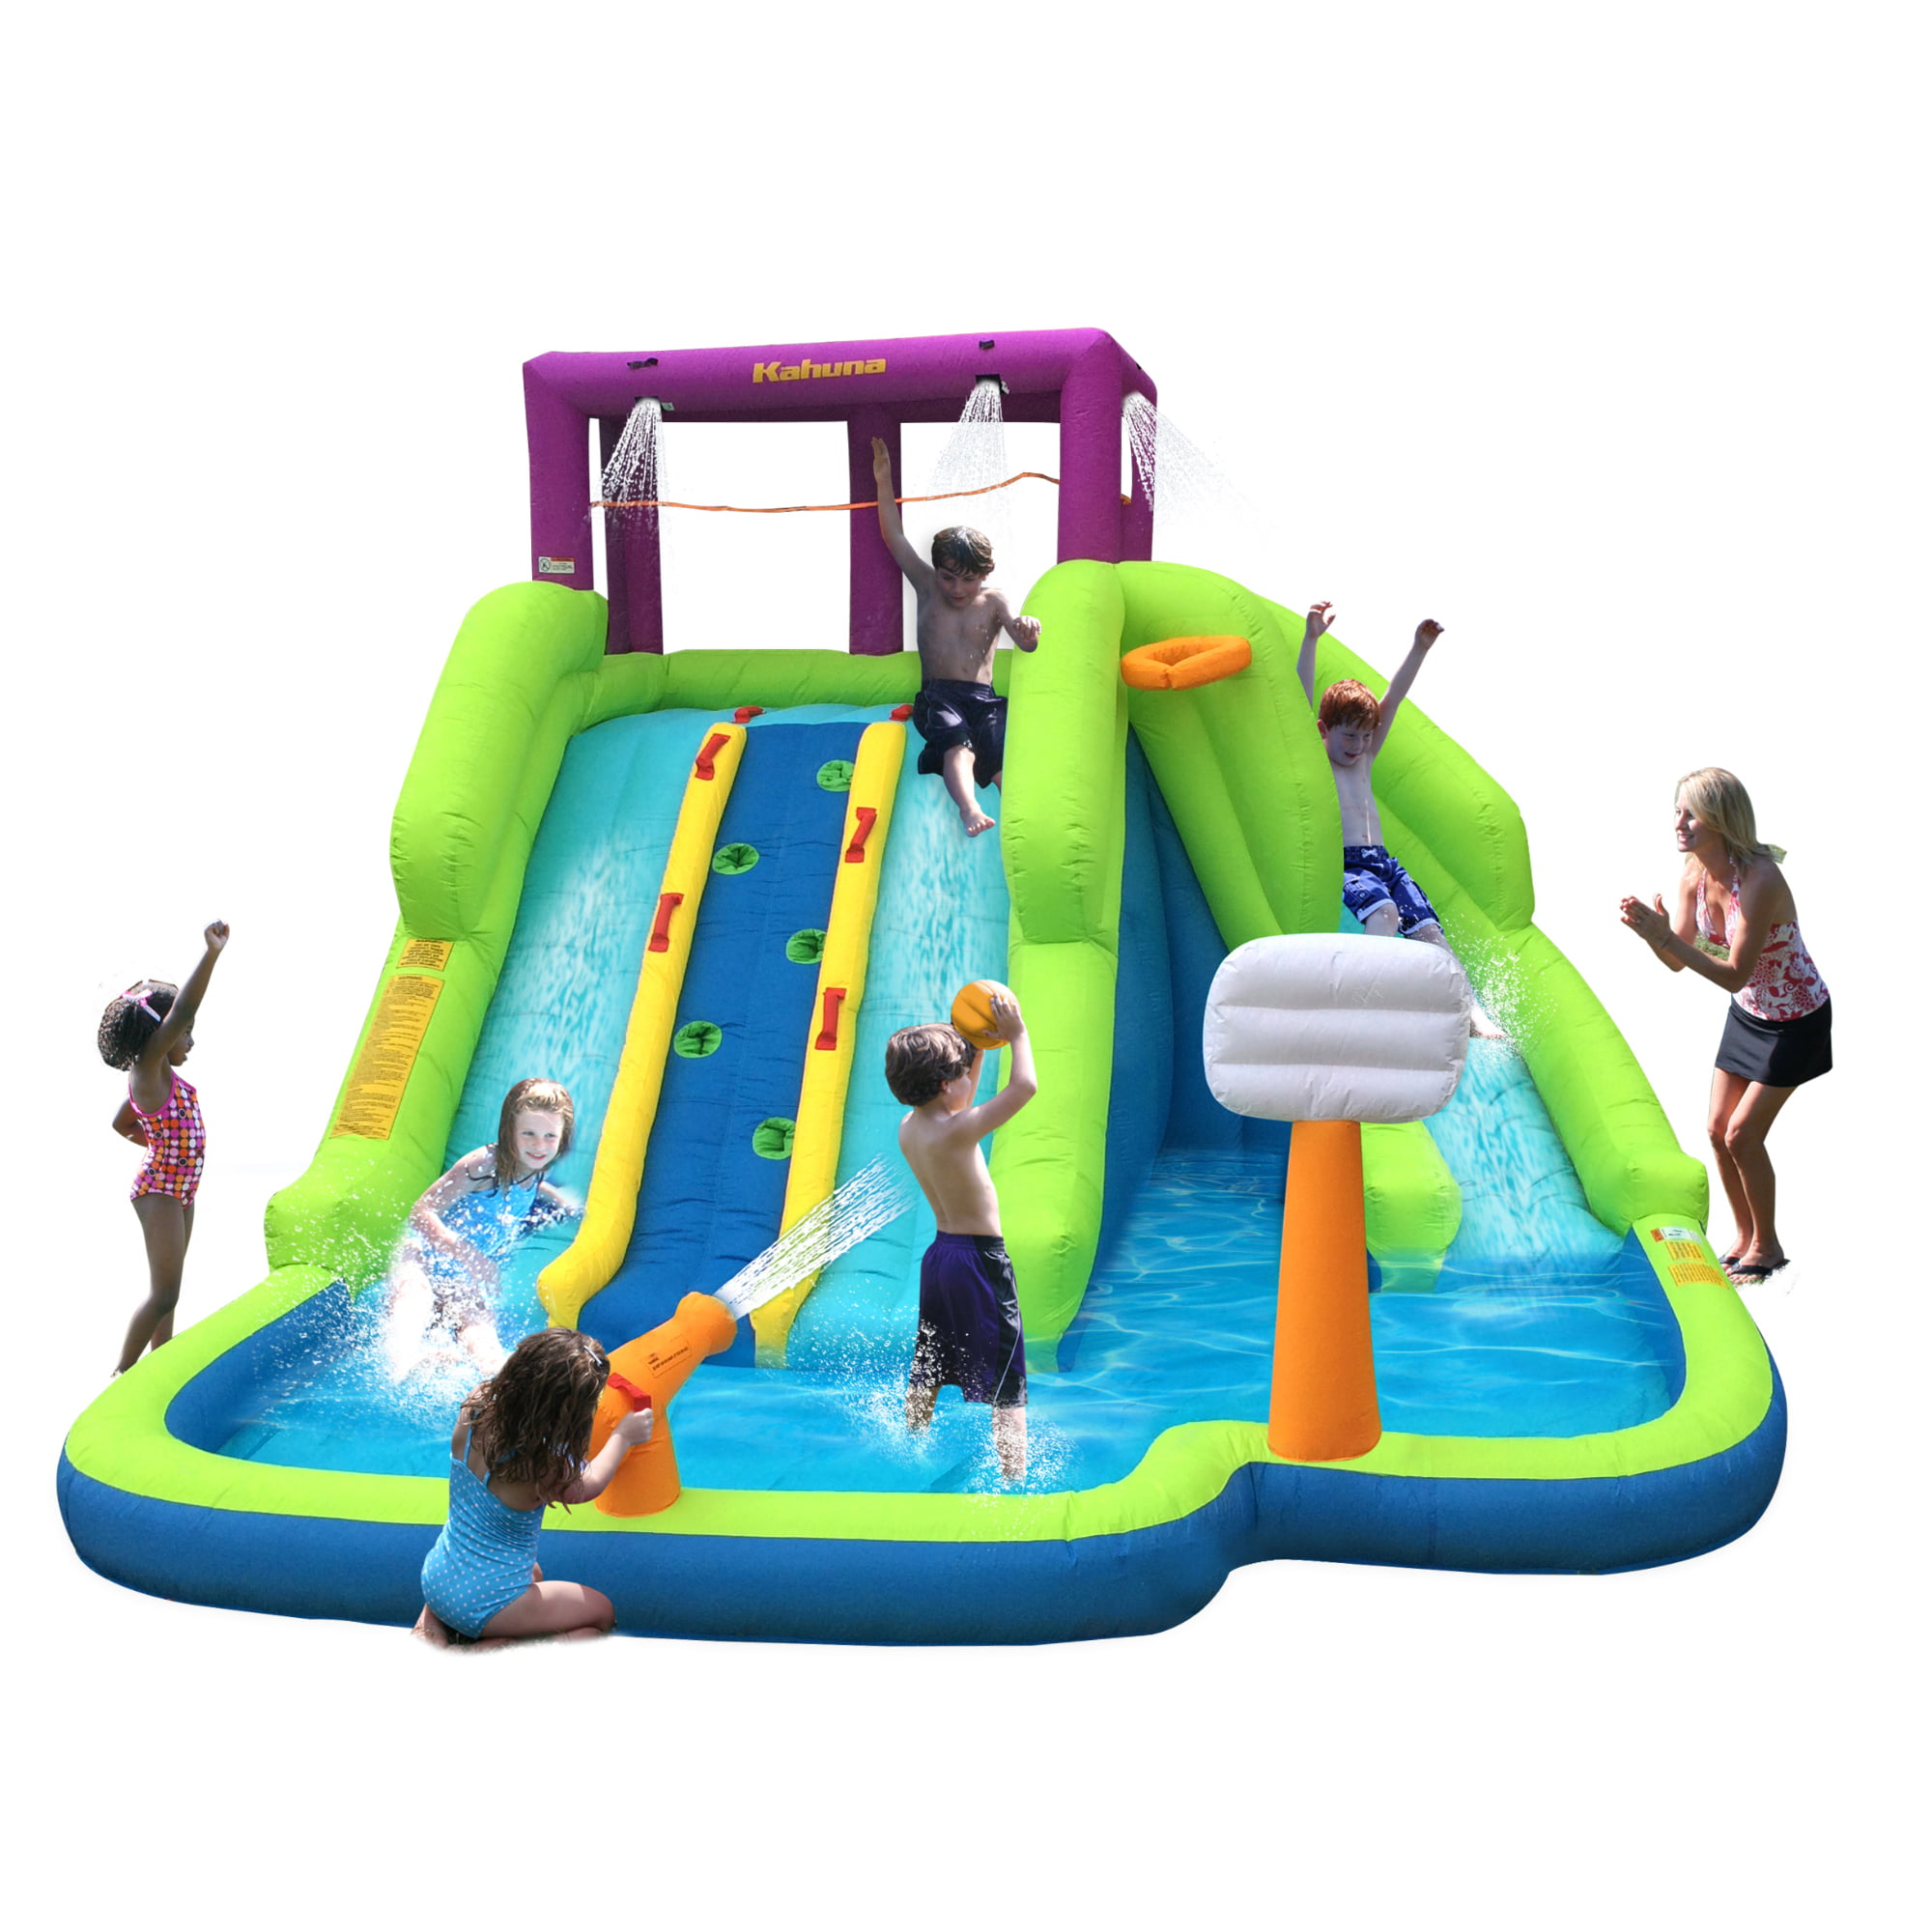 Magic Time Triple Blast Inflatable Play Center with Waterslides by Magic Time